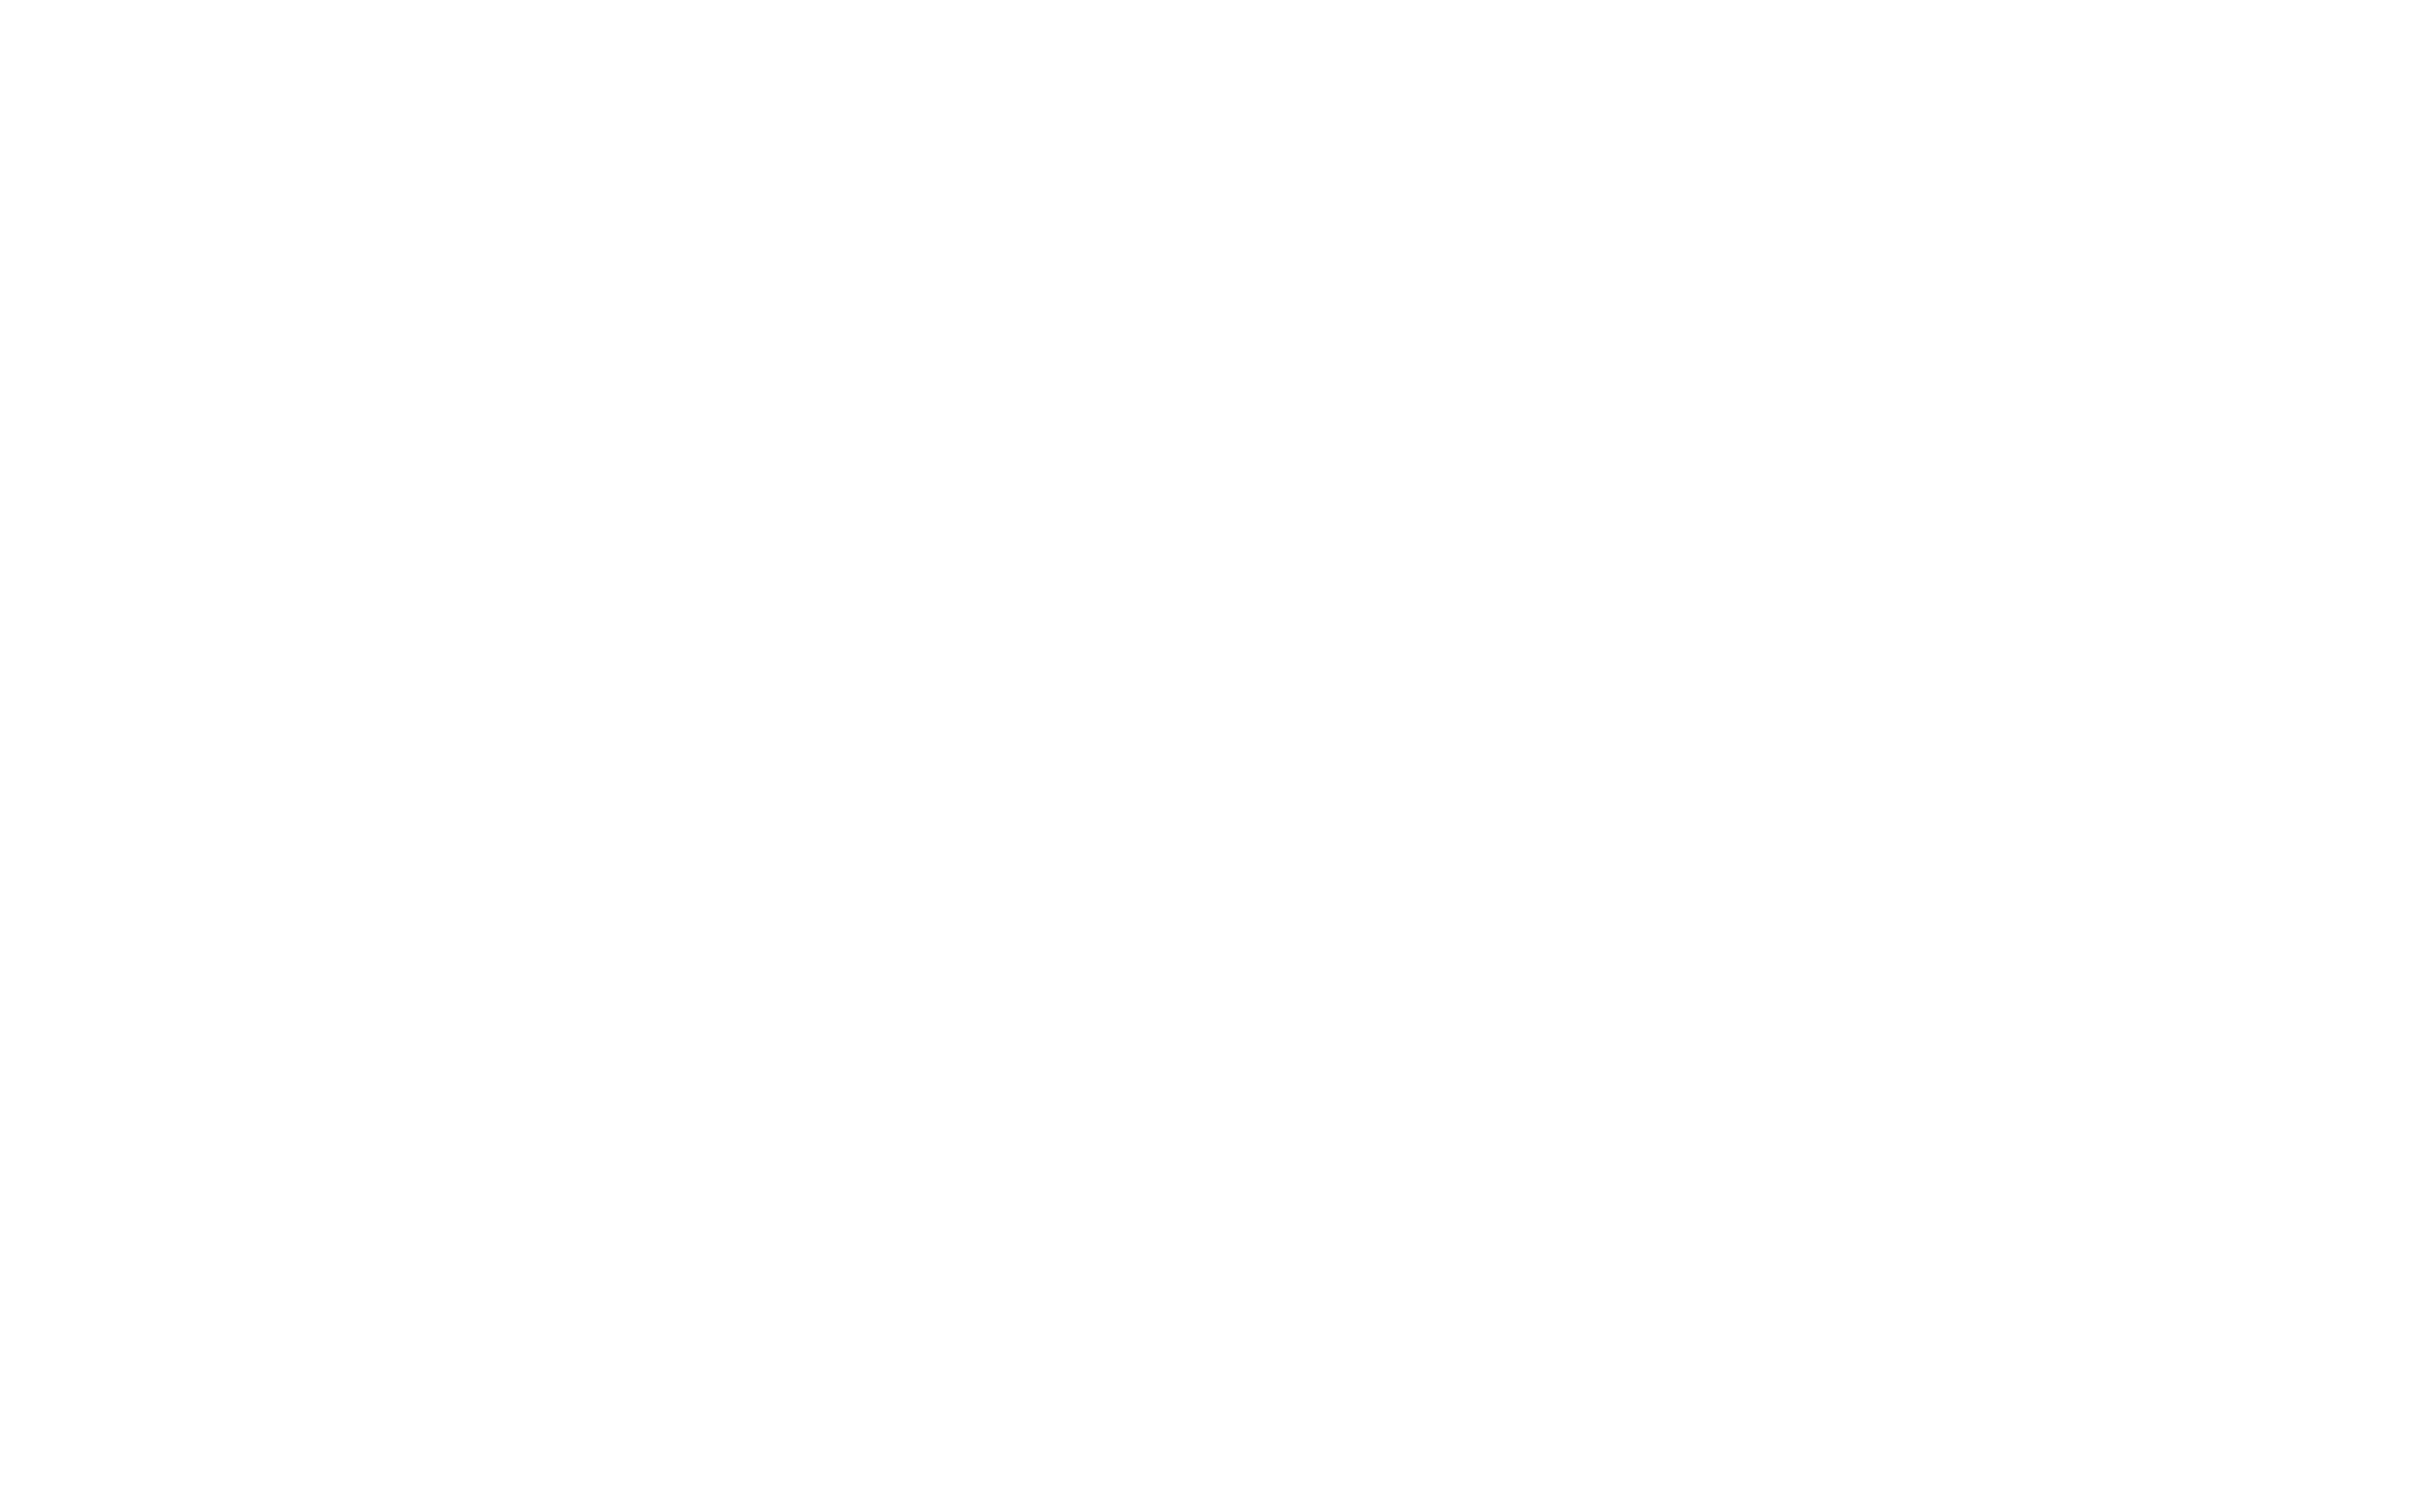 Missouri River icon